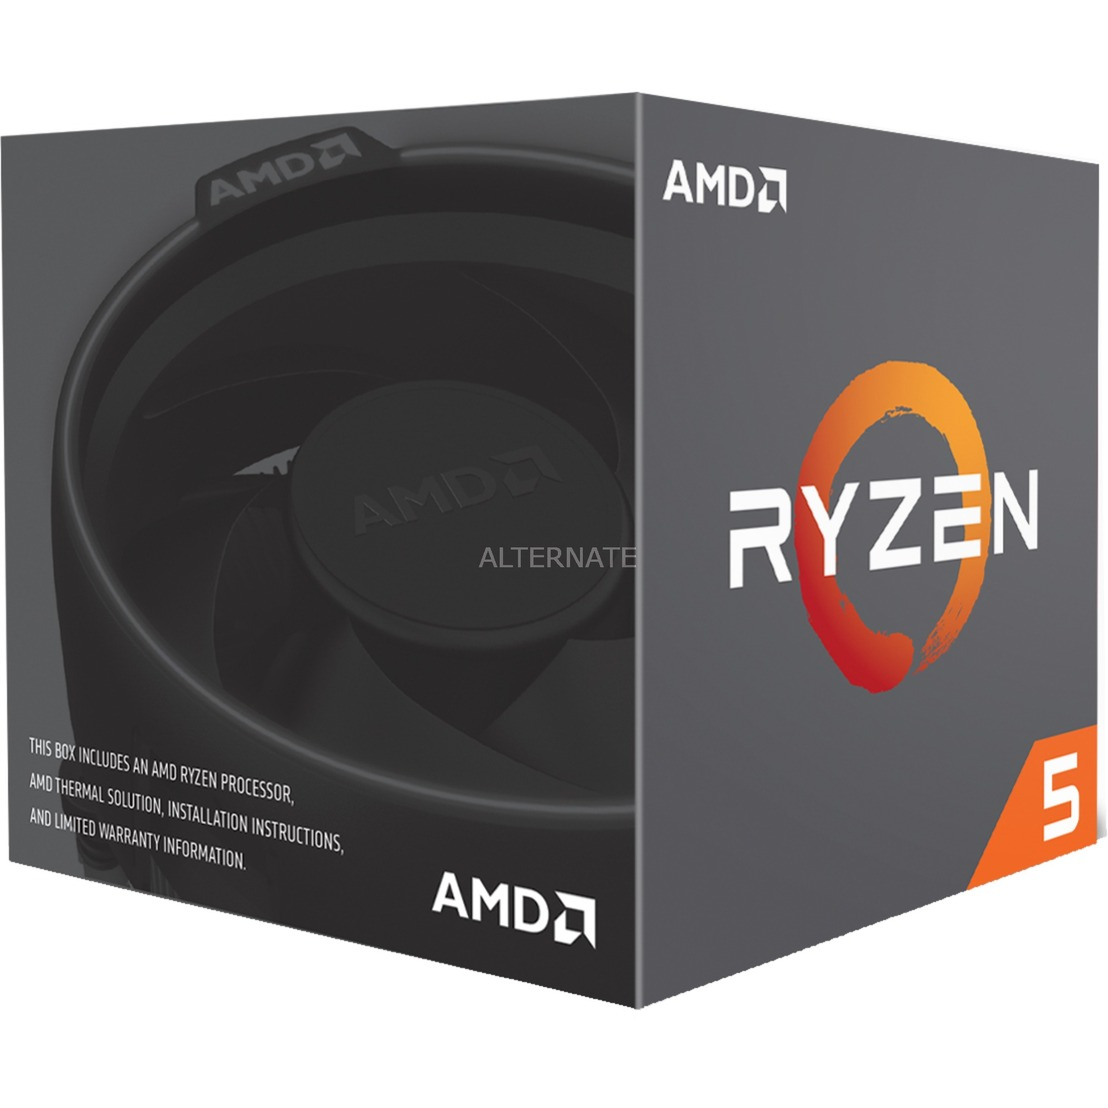 Ryzen 5 2600, 3,4 GHz (3,9 GHz Turbo Boost), Processeur